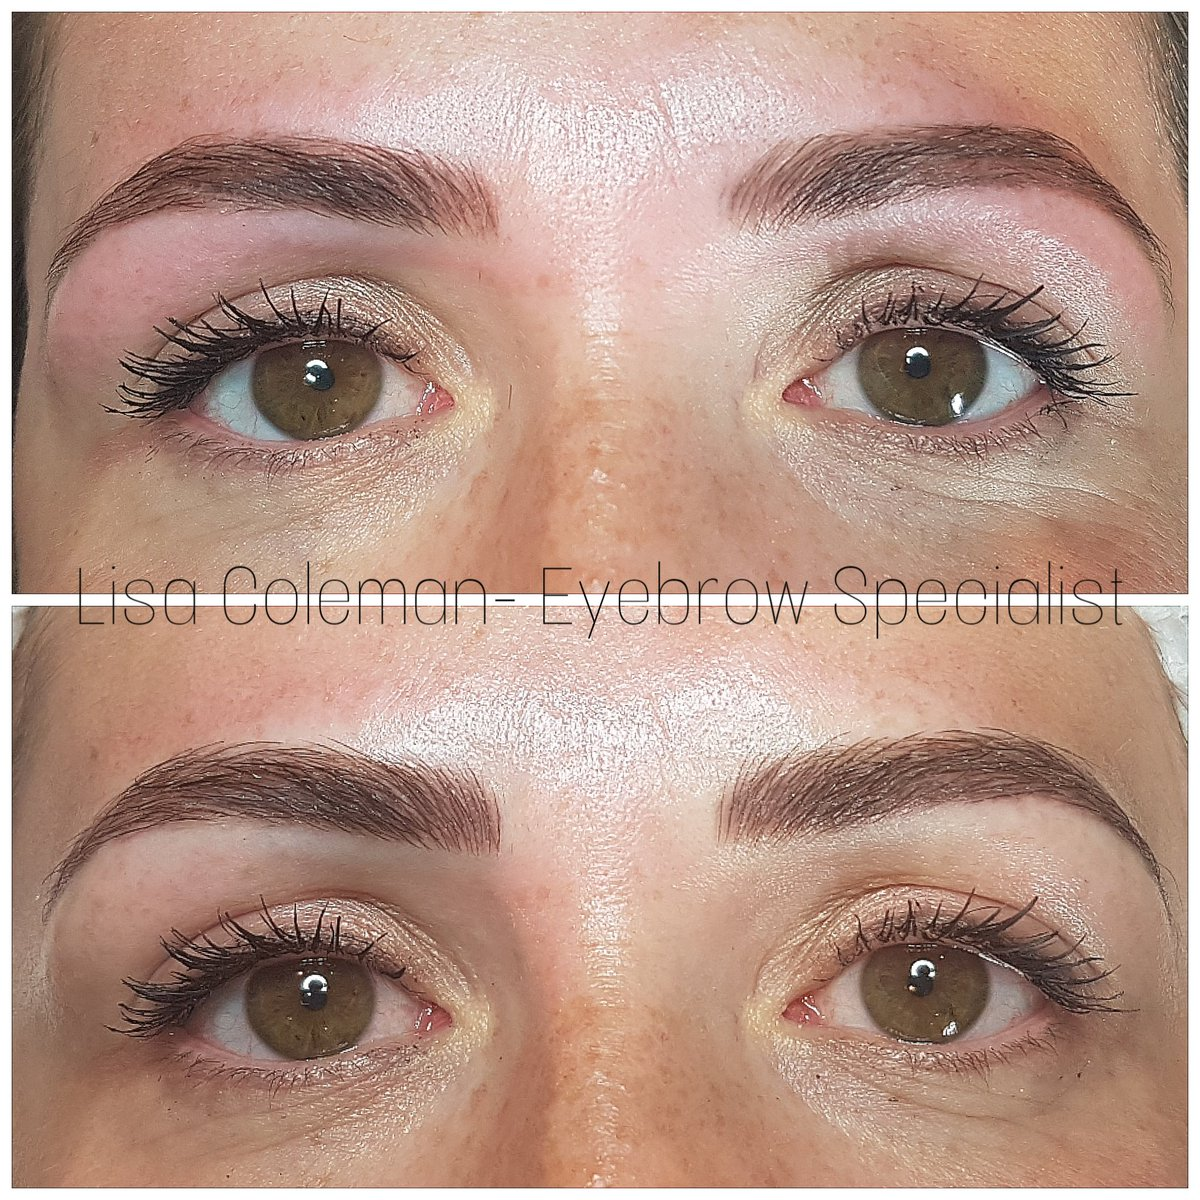 Lisavcoleman On Twitter Fabulous Week Changing Lives And Brows